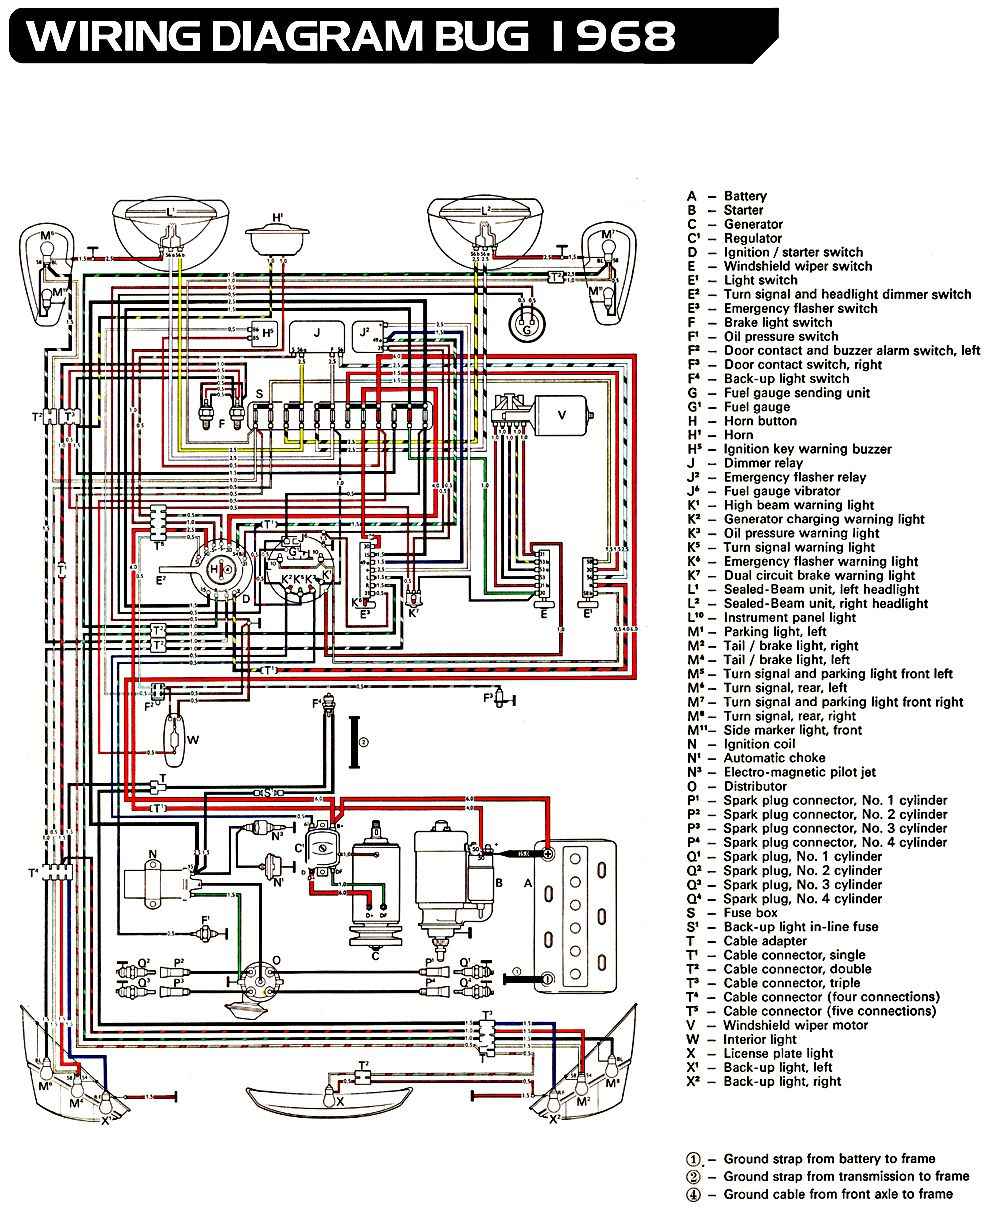 Vw Bug Ignition Wiring Diagram  73 vw wiring diagram free